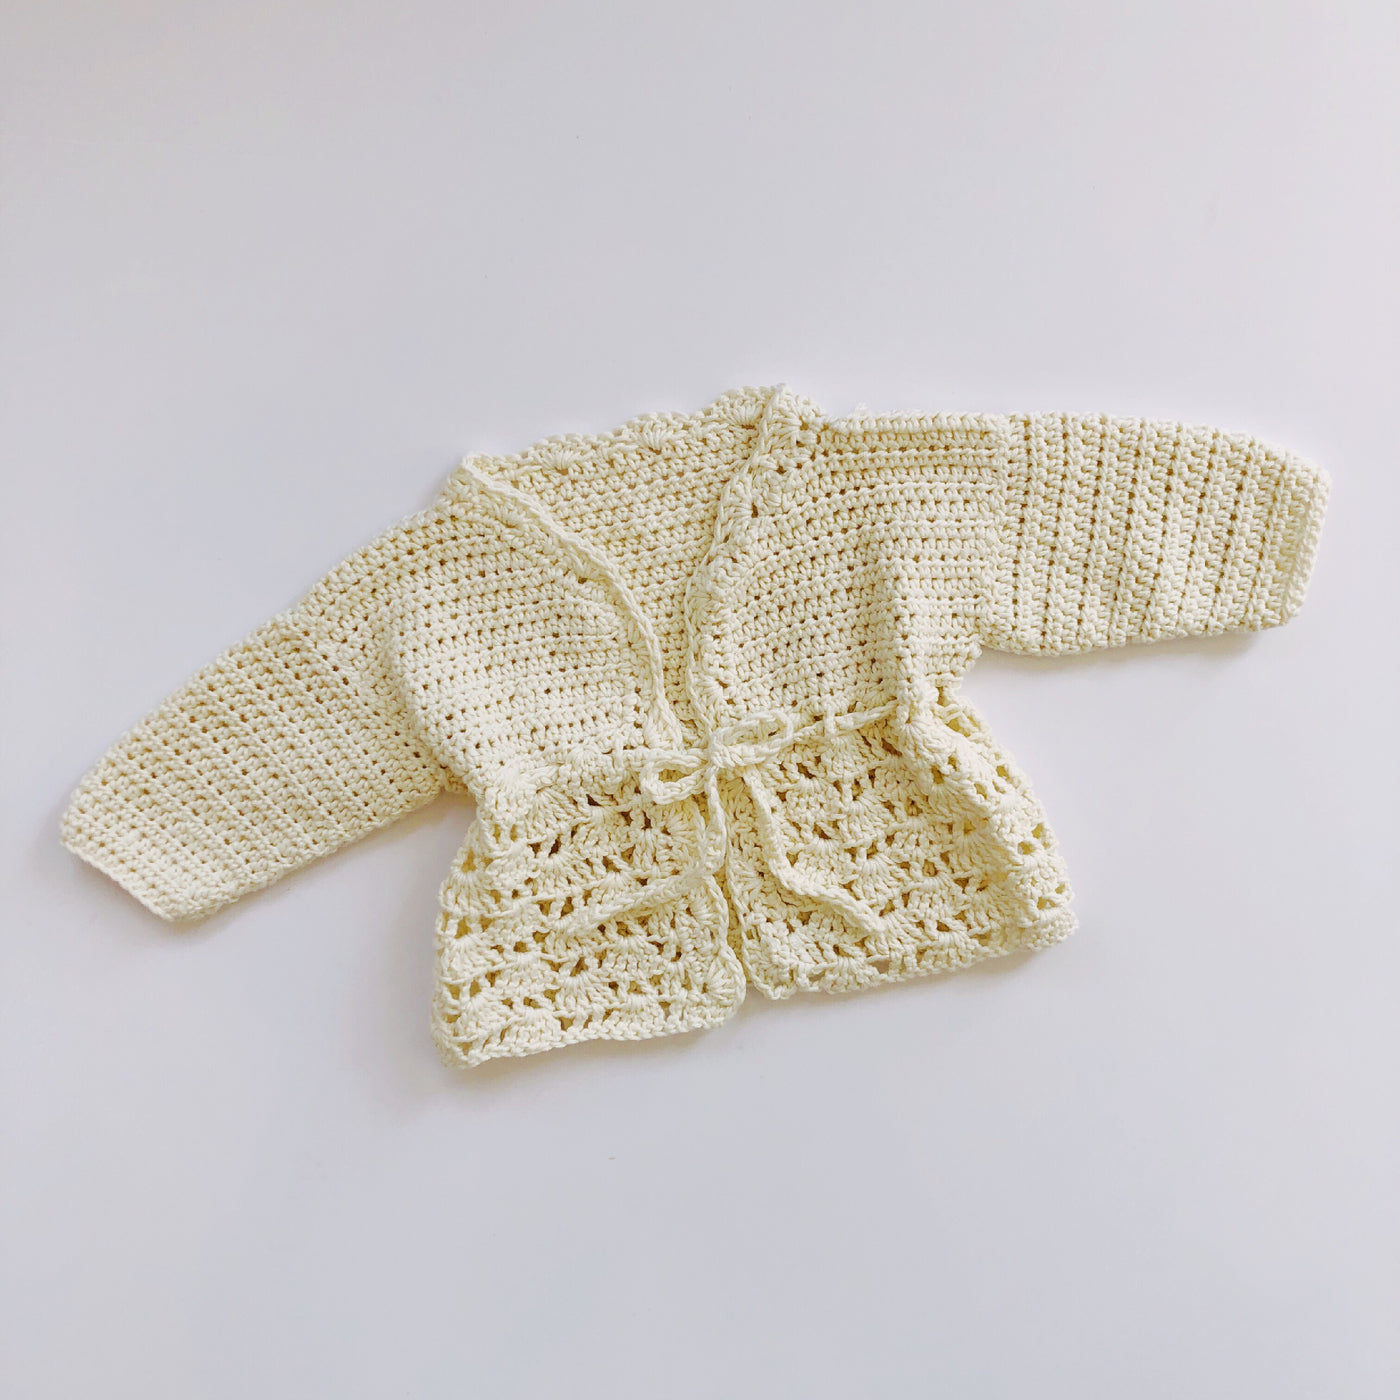 Creamy Knit Sweater with Tie / Size 9M